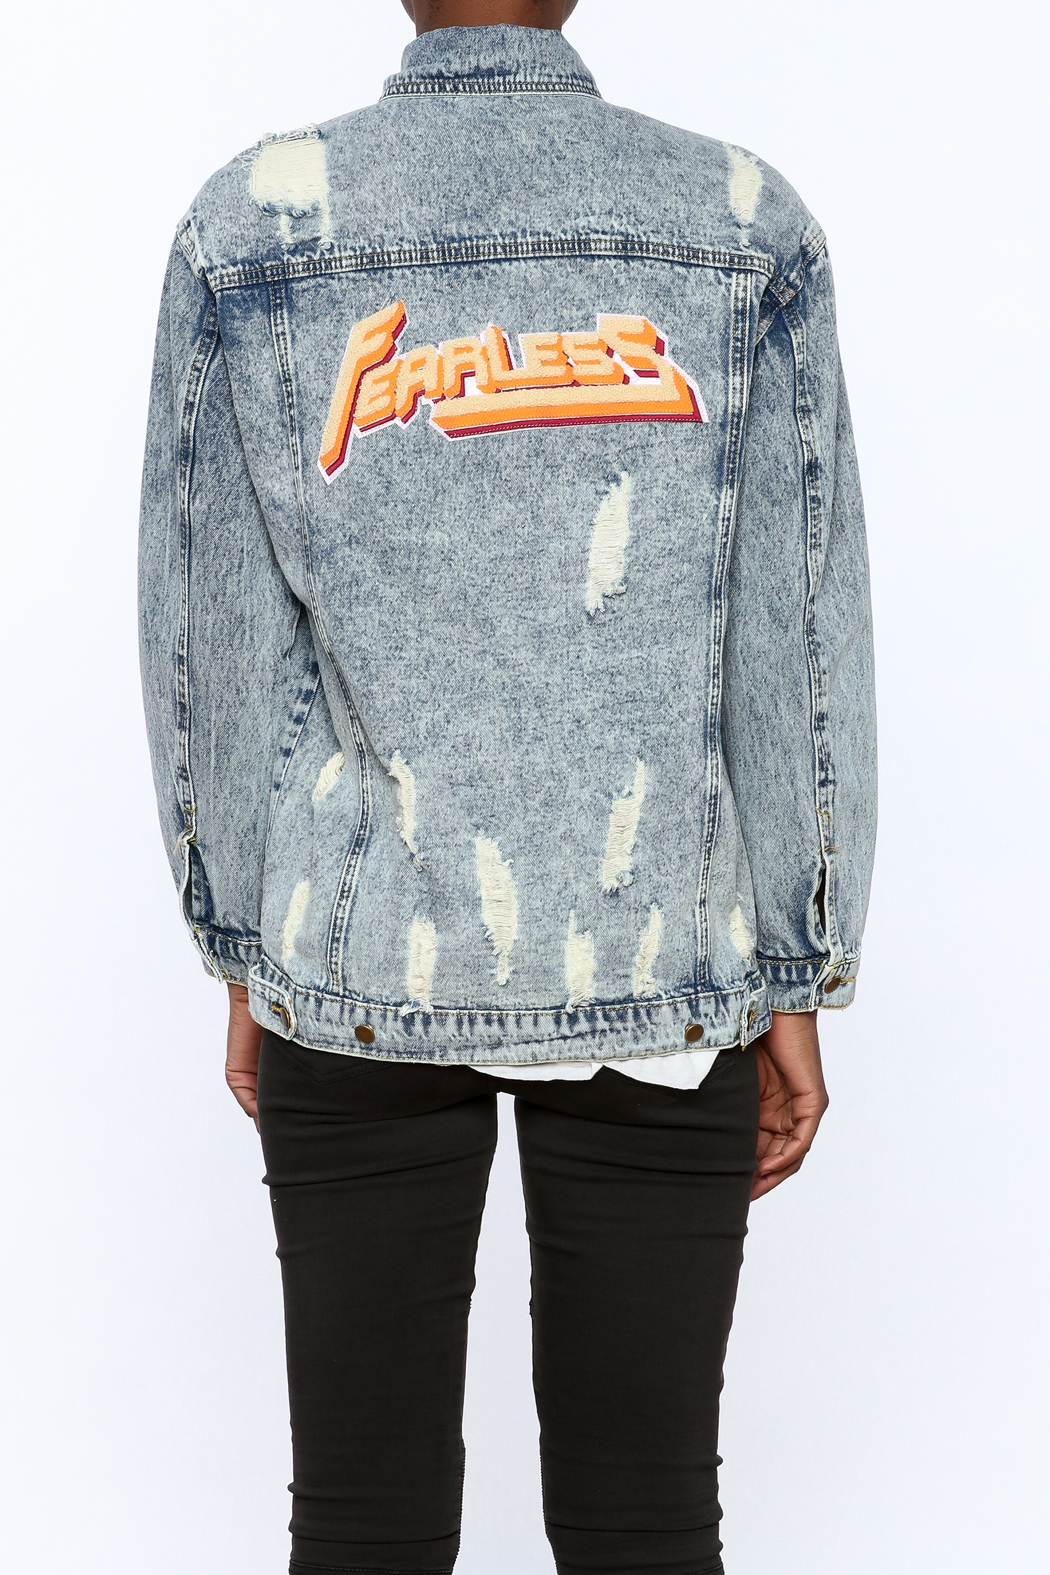 3c7a31ebc52a Honey Punch Distressed Denim Jacket from New York by Dor L Dor ...